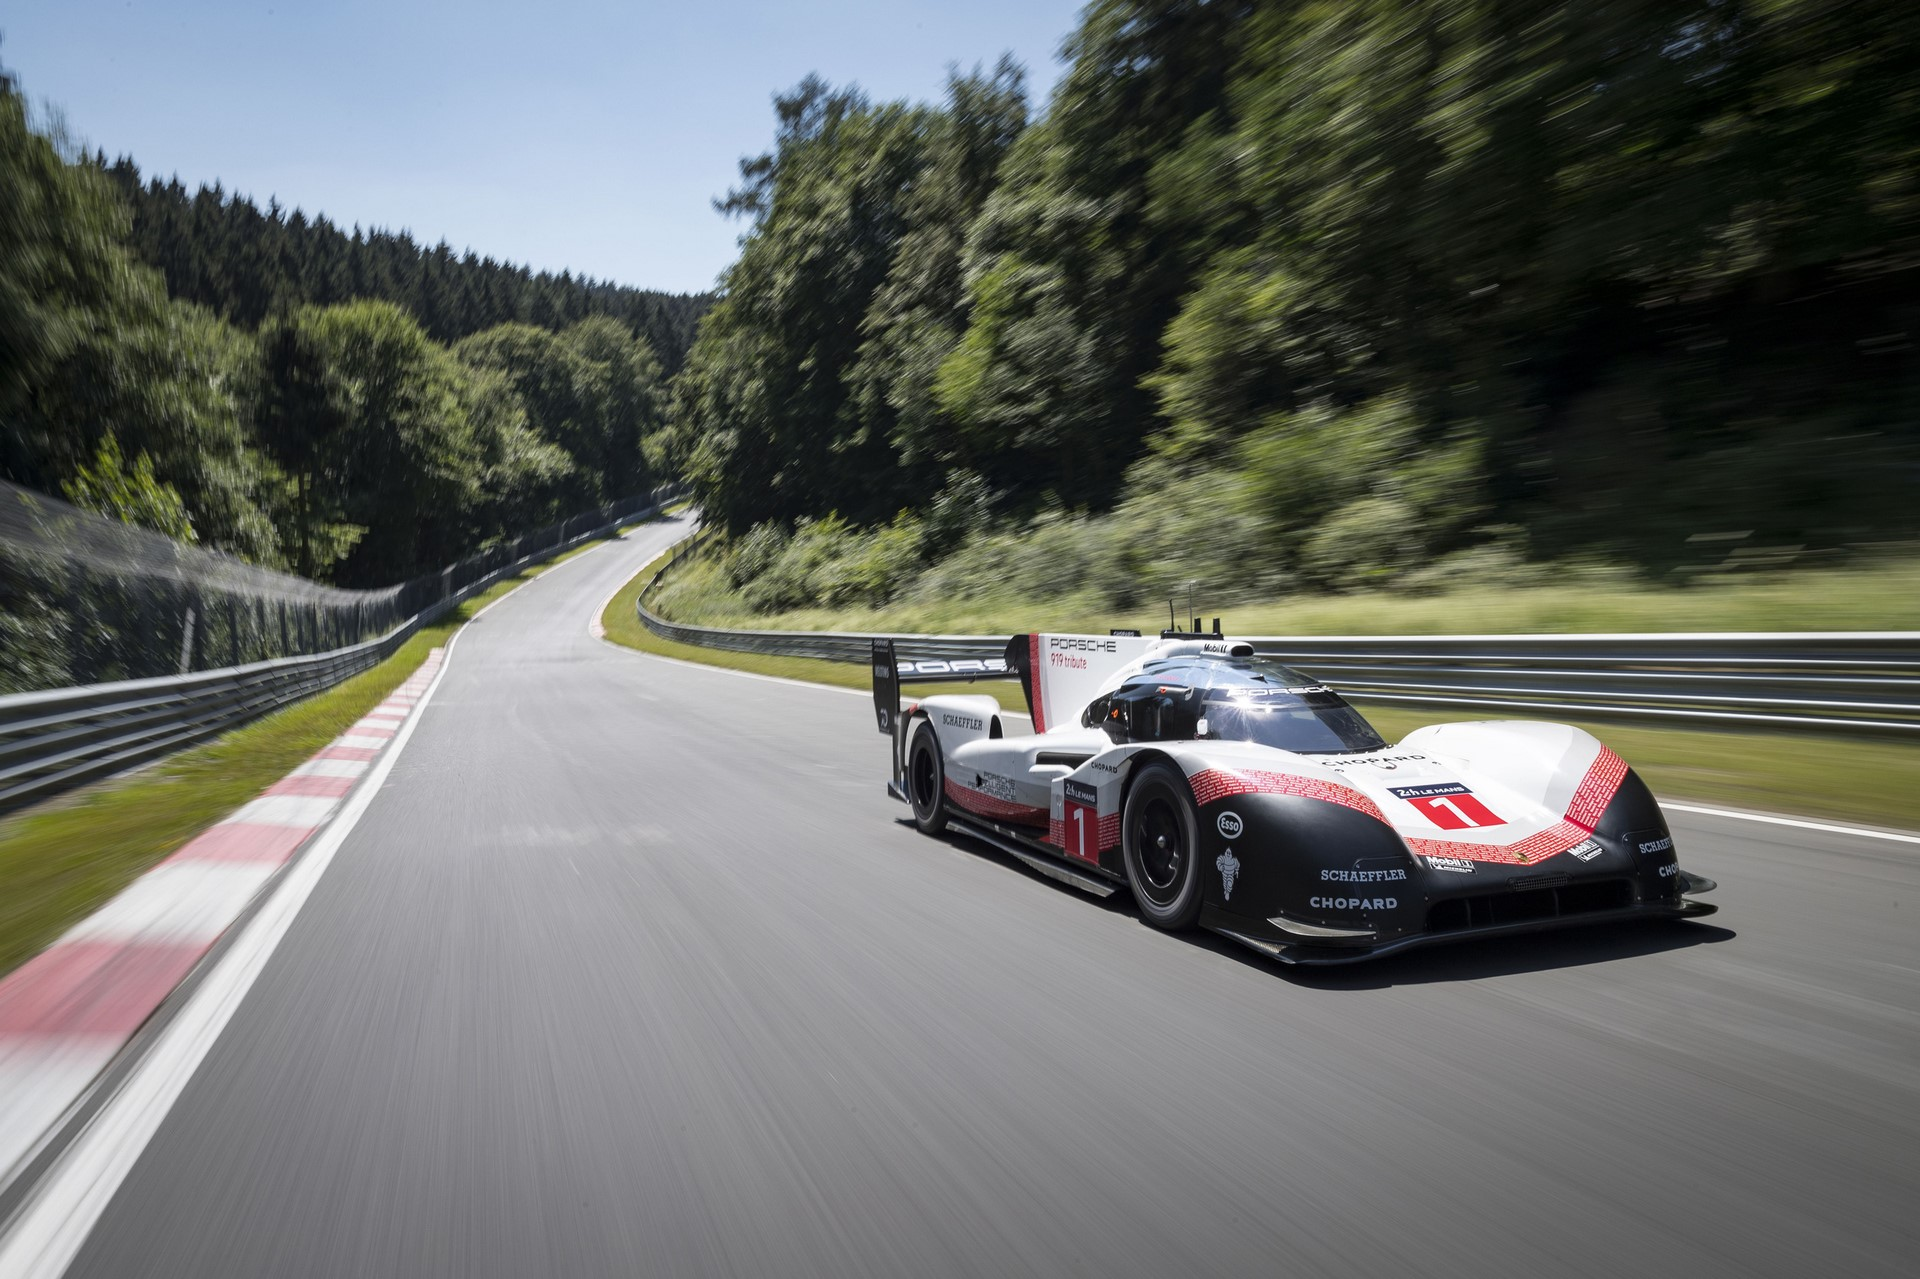 porsche-919-ring-lap-record-004-1